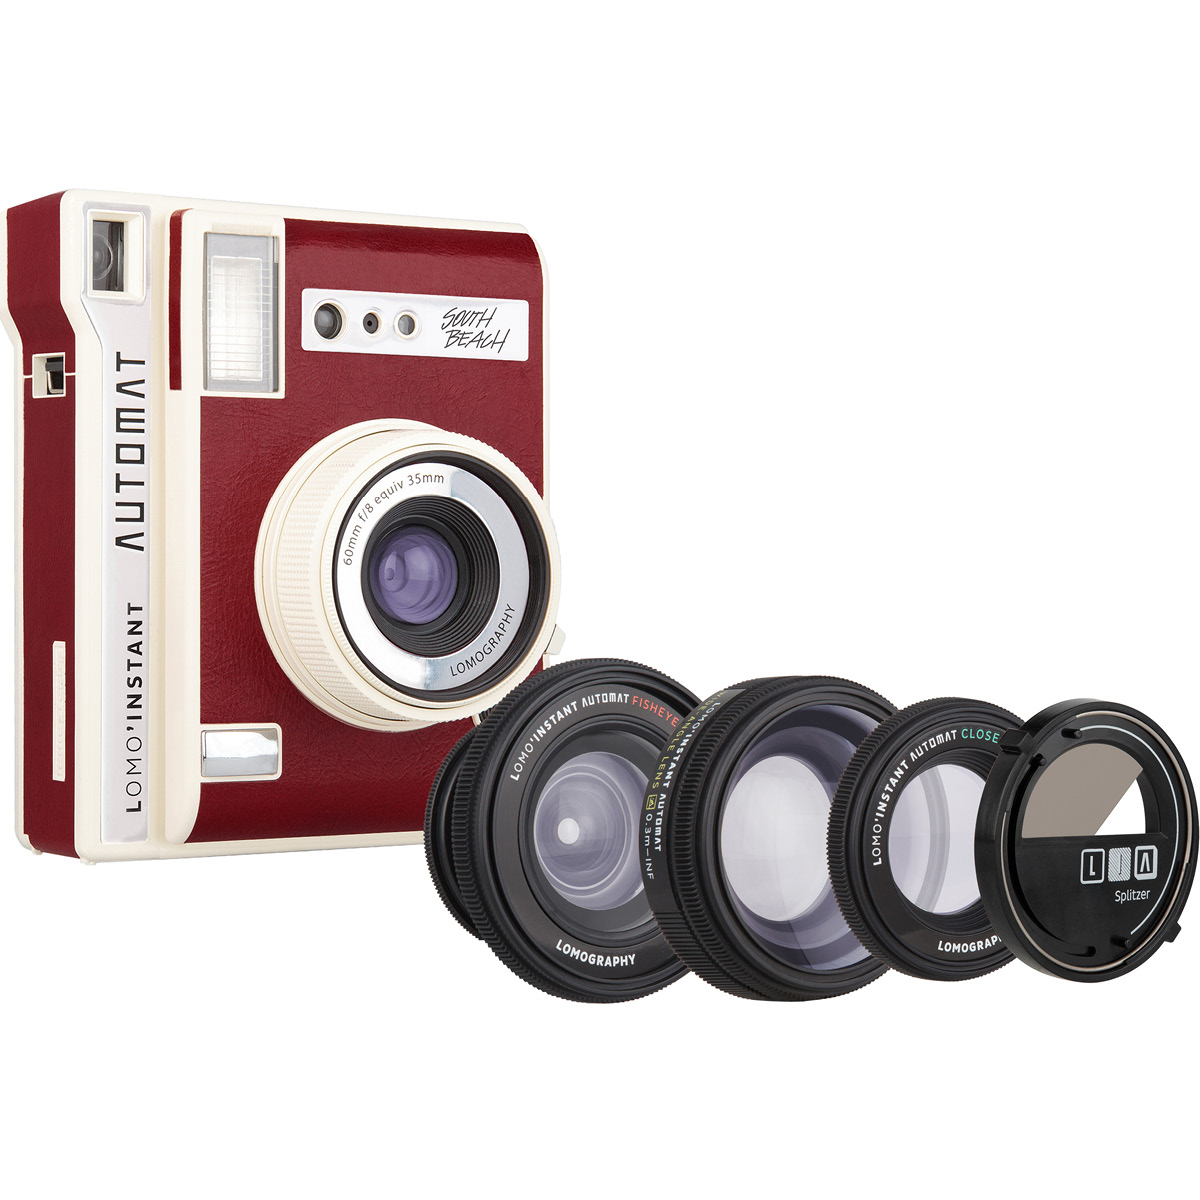 Lomography Lomo'Instant Automat South Beach Kit mit Objektivaufsätzen